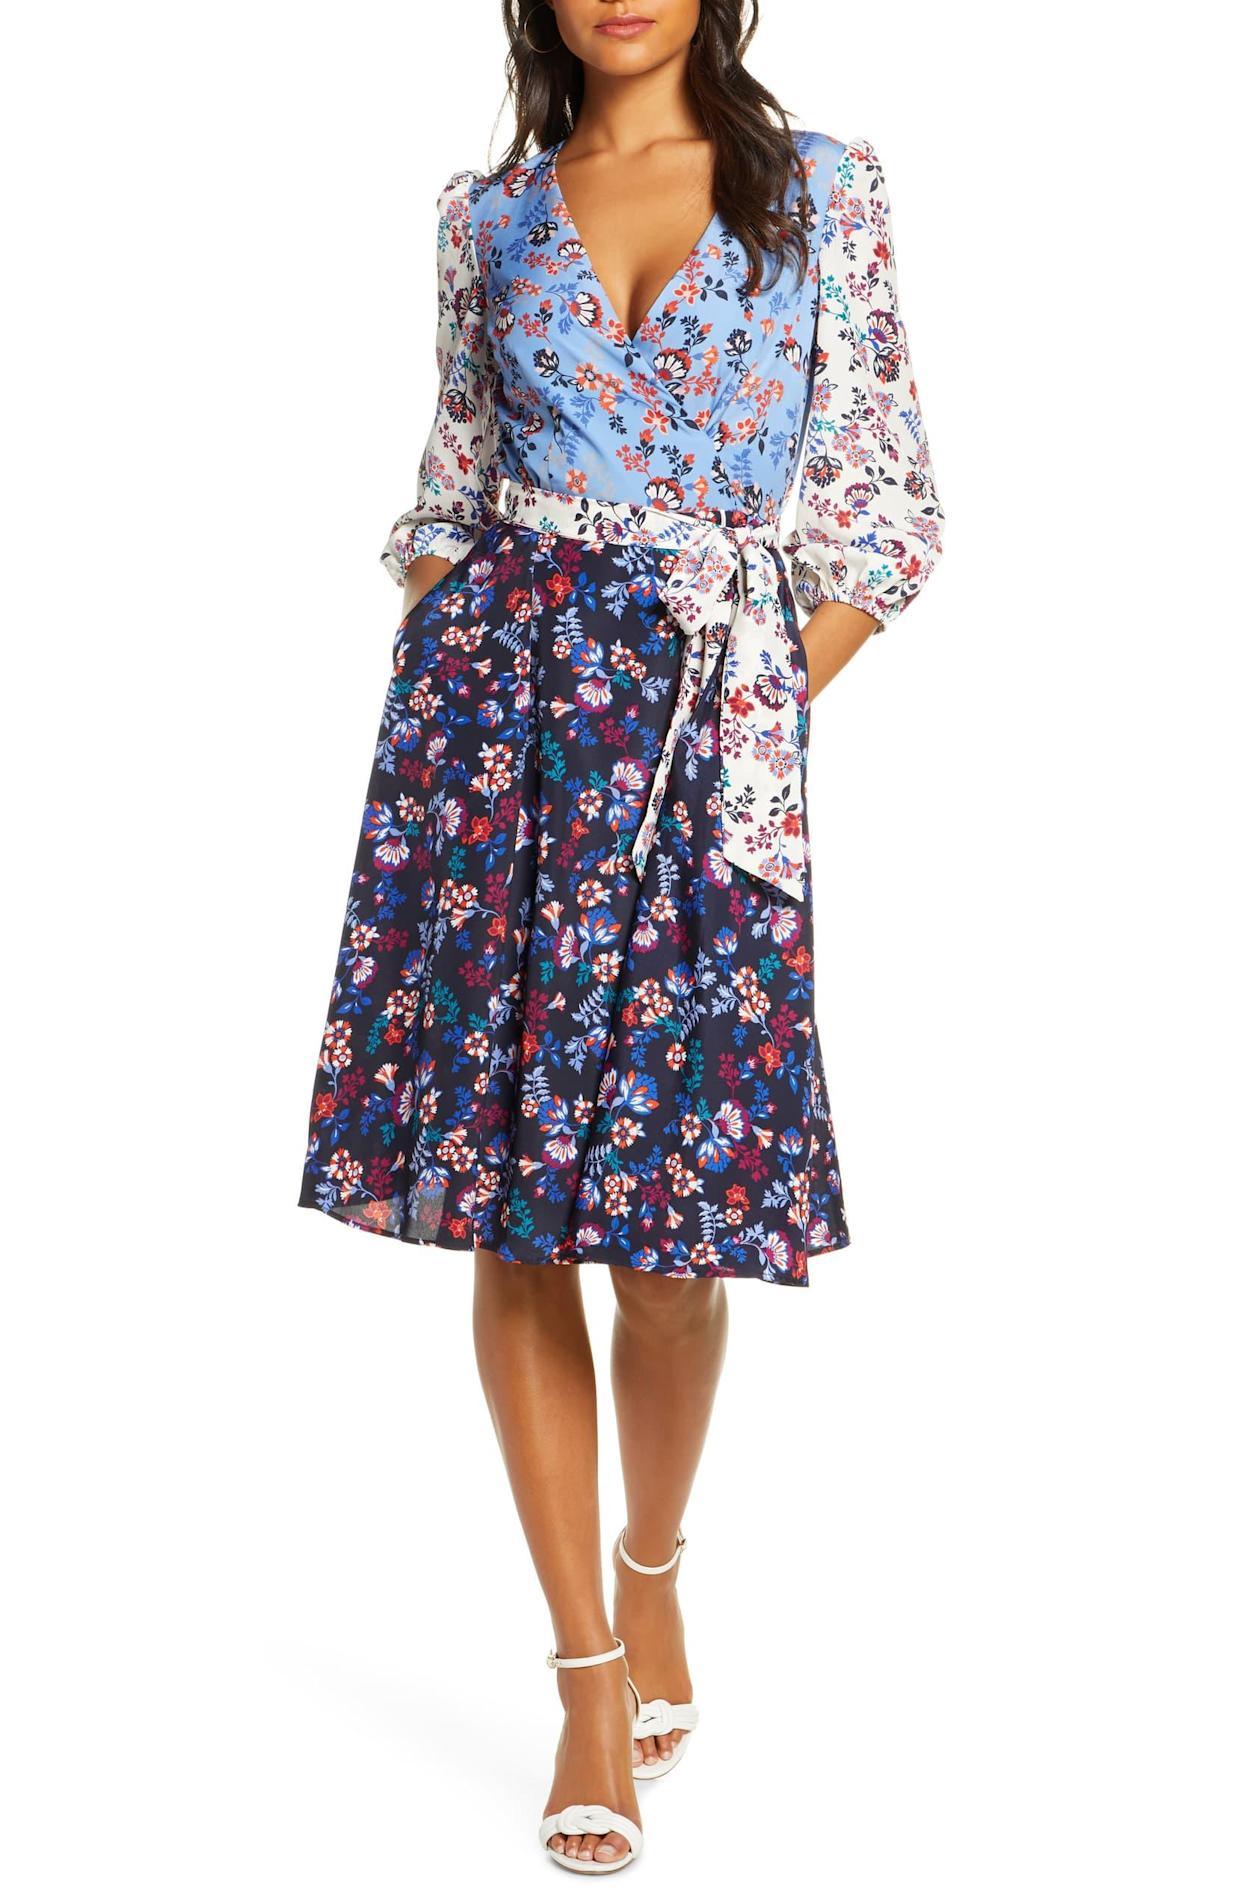 This washer-friendly dress is designed with roomy three-quarter sleeves and elastic cuffs for a comfortable fit. (Photo: Nordstrom)